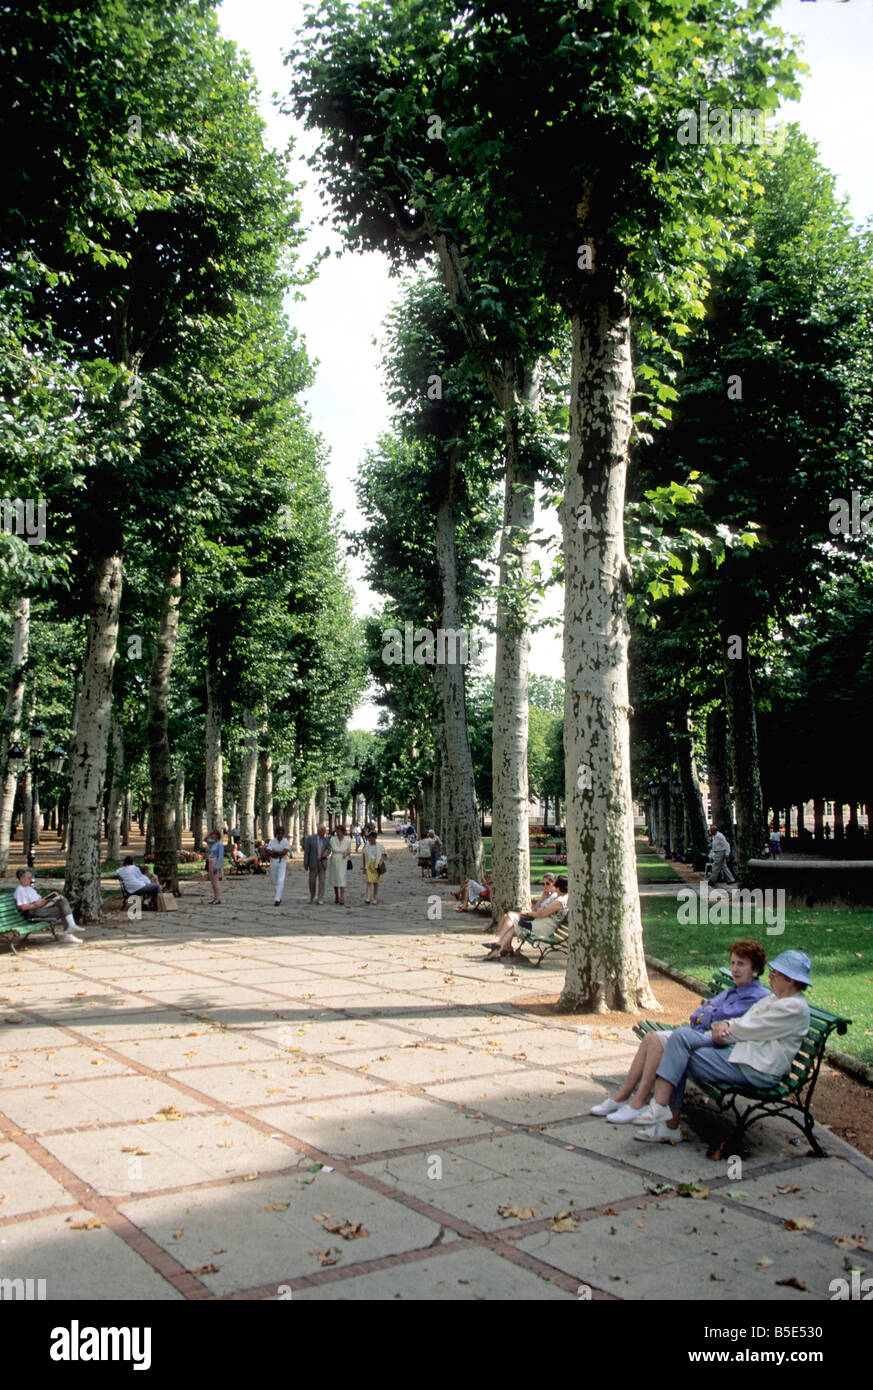 Thermal park of Vichy, France - Stock Image